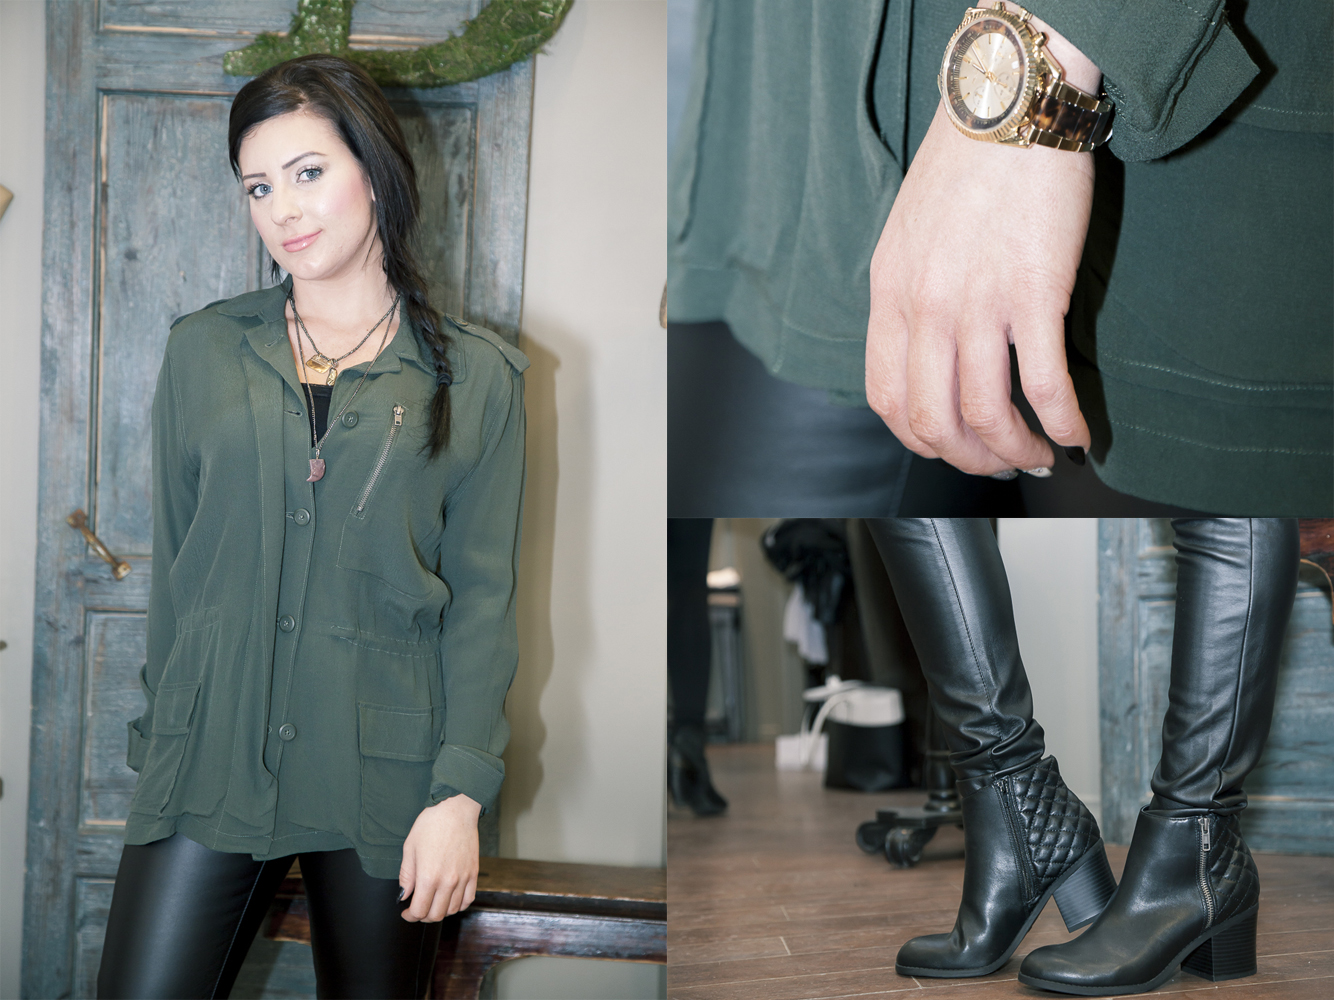 Bella-Maas-Boutique-bb-dakota-mia-shoes-margo-black-michael-kors-watch-army-jacket-spring-yeg-edmonton-sherwood-park-st-albert-fashion-style